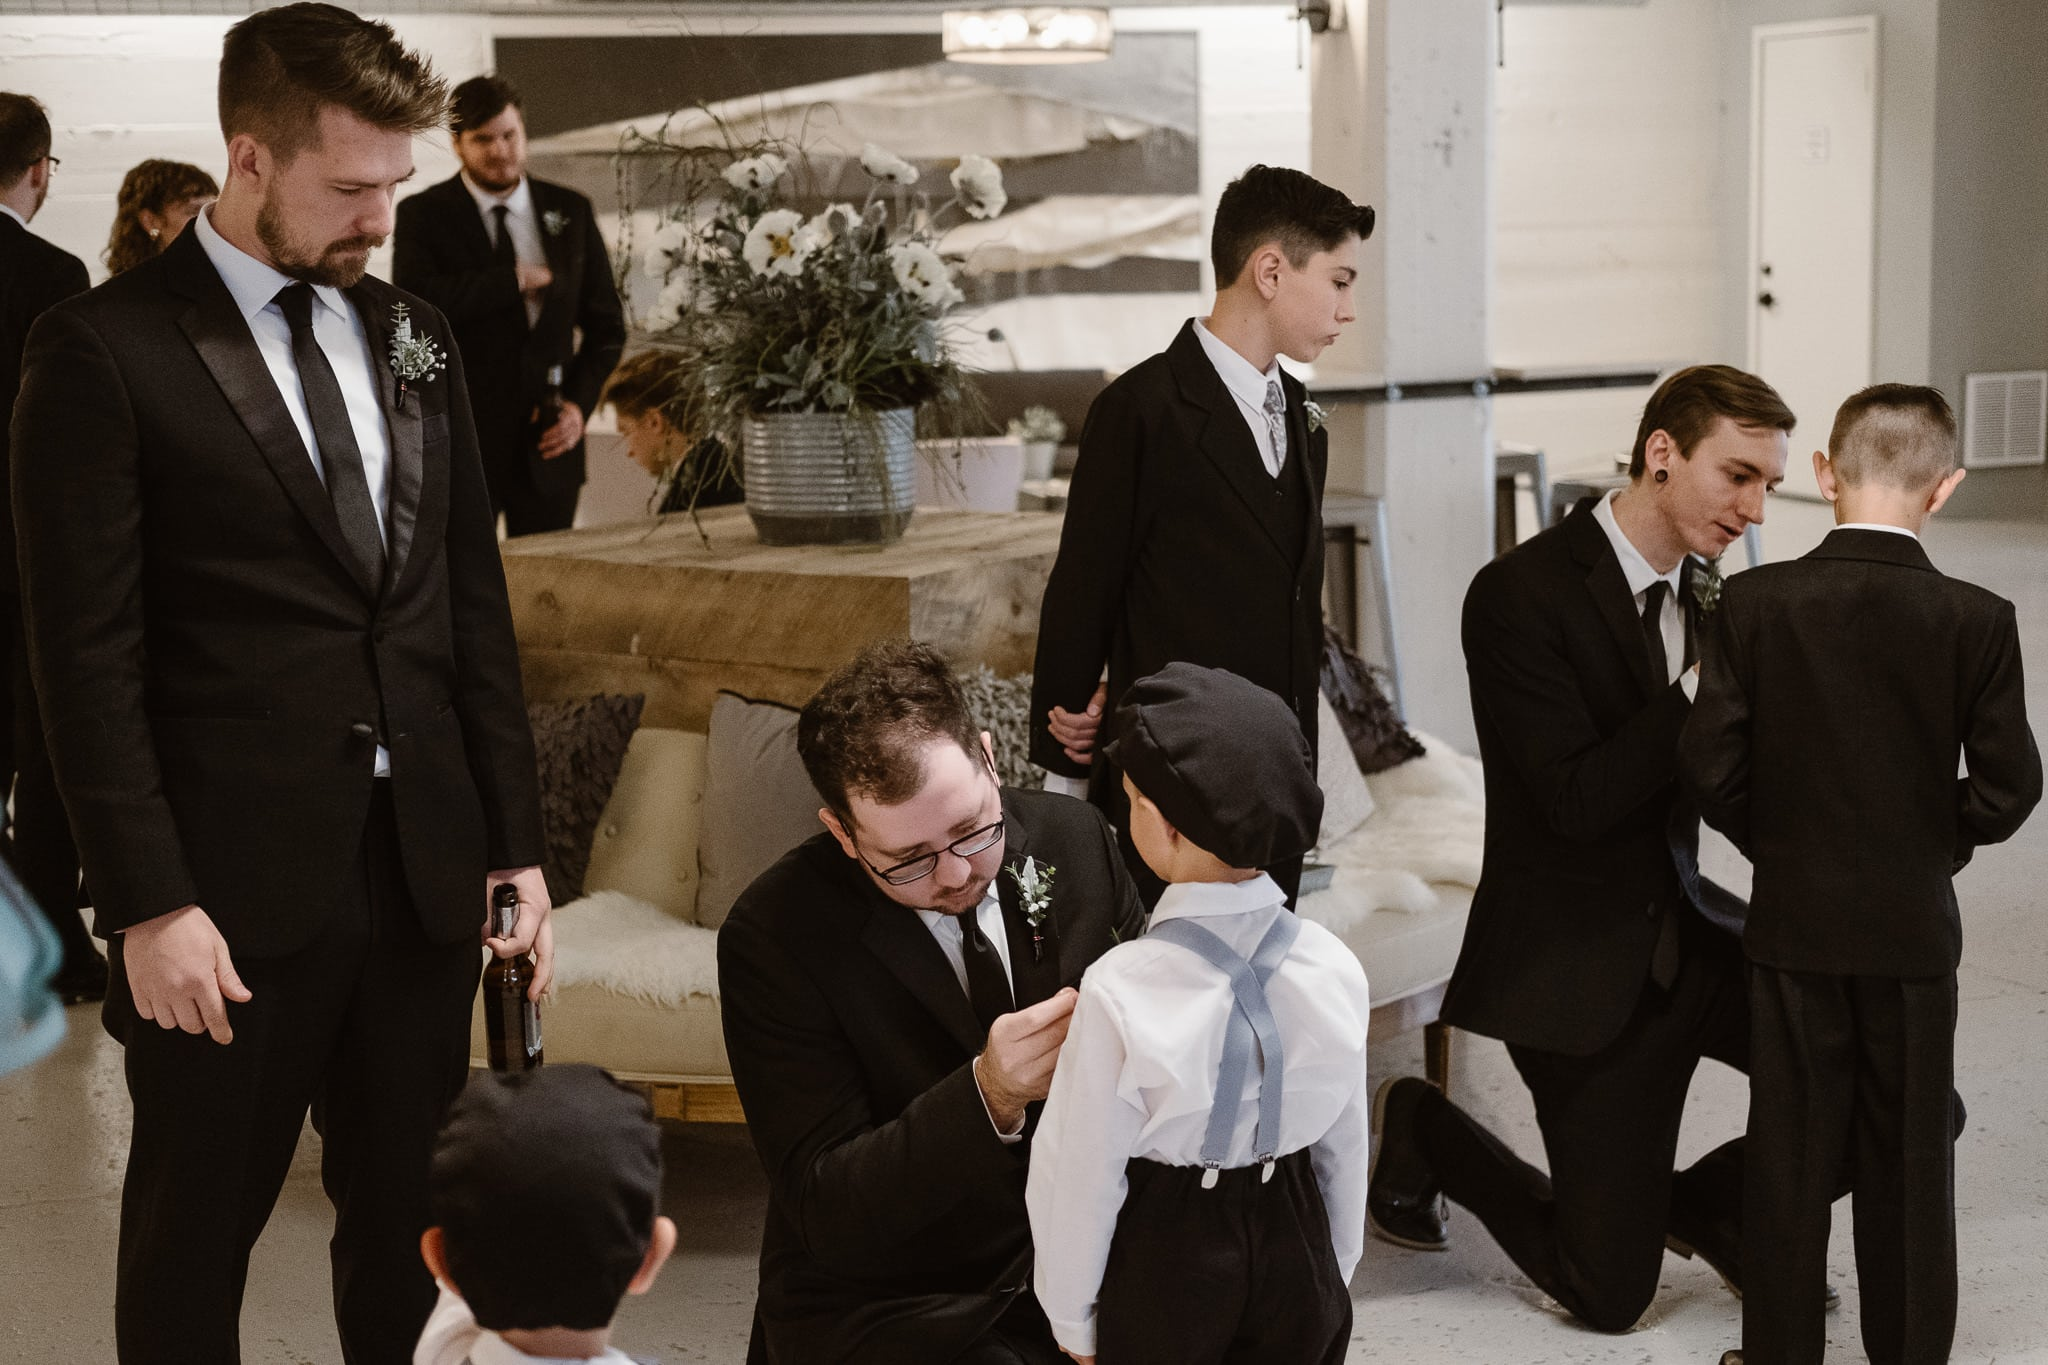 St Vrain Wedding Photographer | Longmont Wedding Photographer | Colorado Winter Wedding Photographer, Colorado industrial chic wedding, groomsmen hanging out